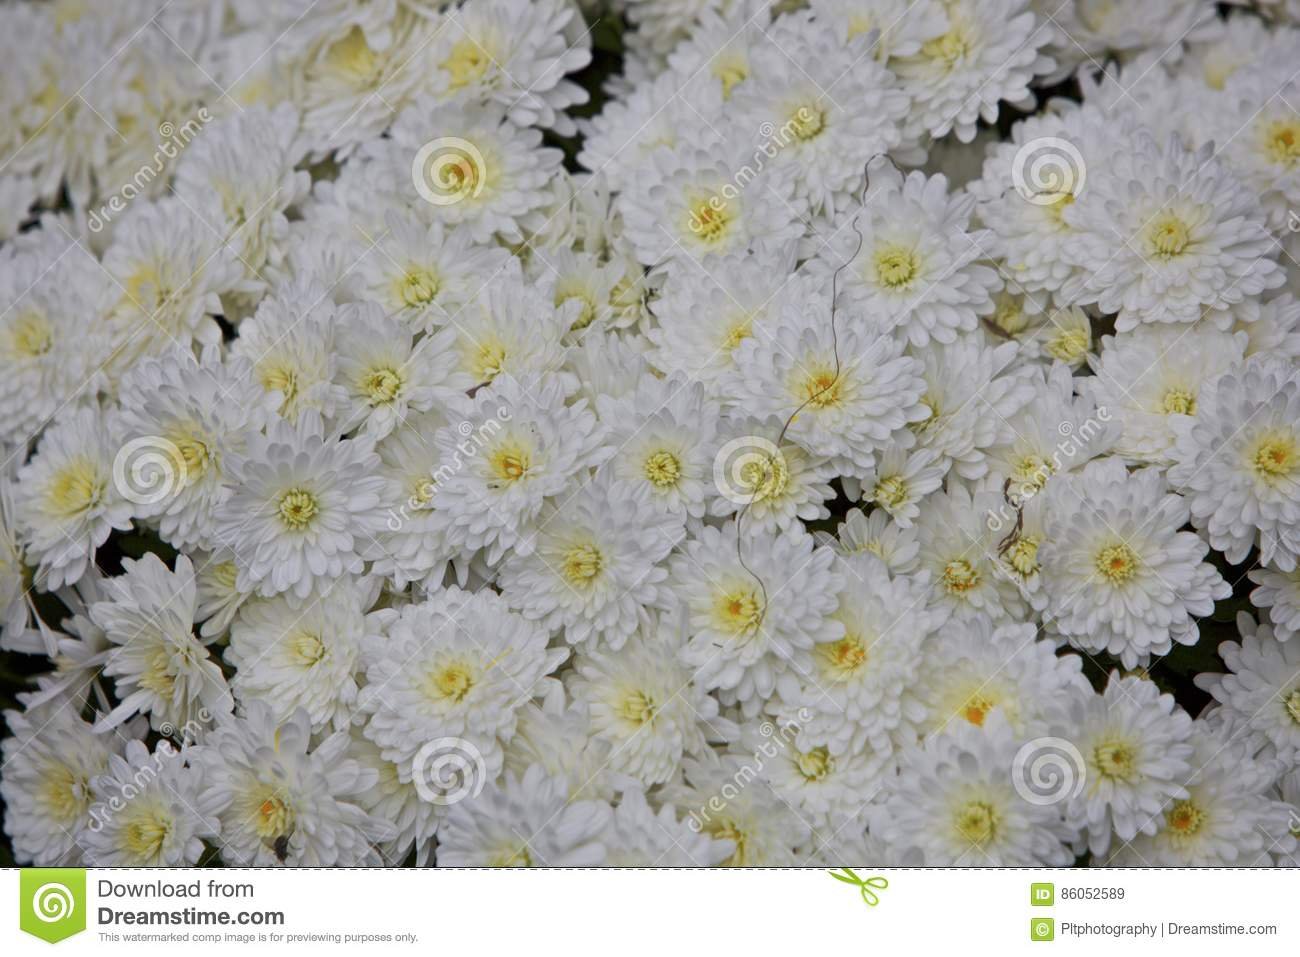 White mums stock image image of asteraceae team flower 86052589 download white mums stock image image of asteraceae team flower 86052589 mightylinksfo